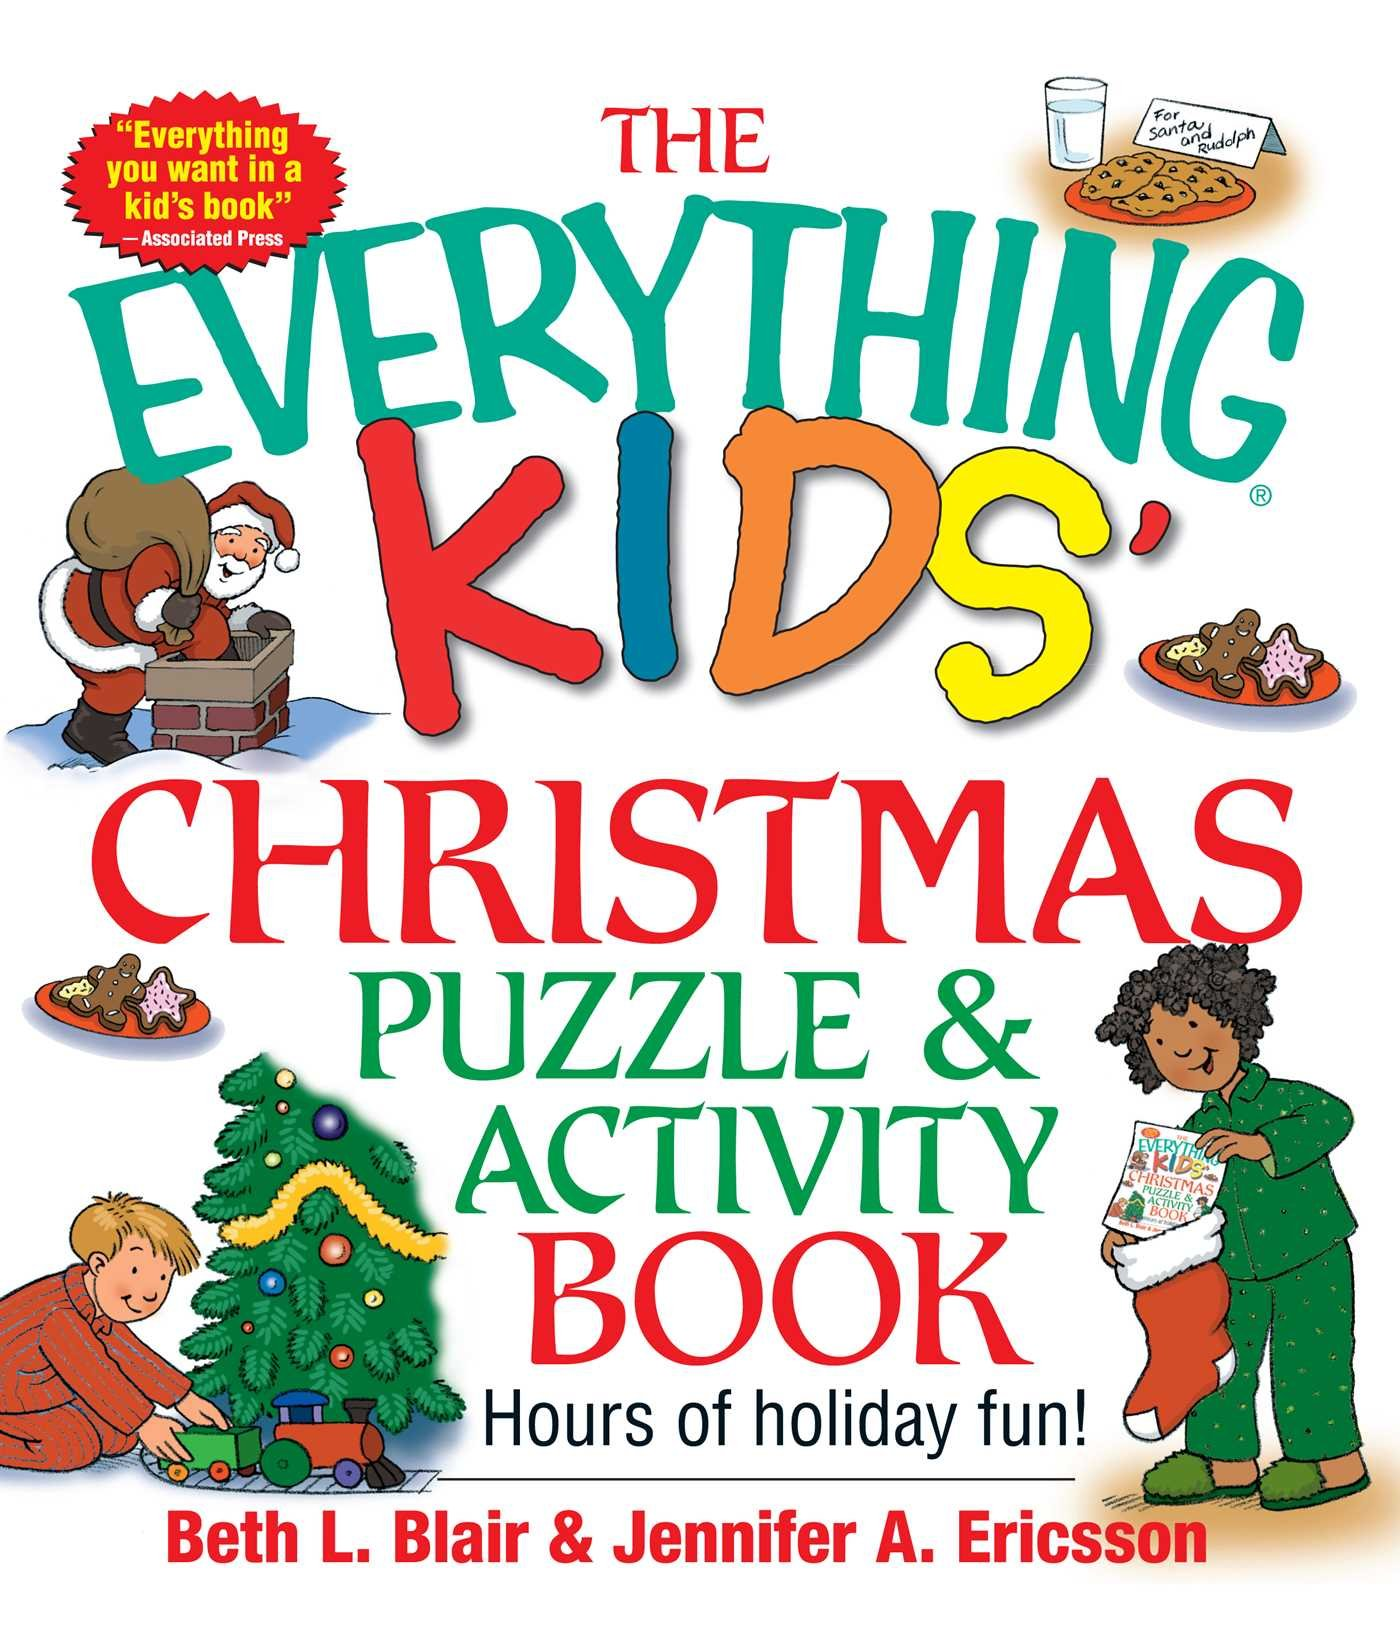 the everything kids christmas puzzle and activity book mazes activities and puzzles for hours of holiday fun beth l blair jennifer a ericsson